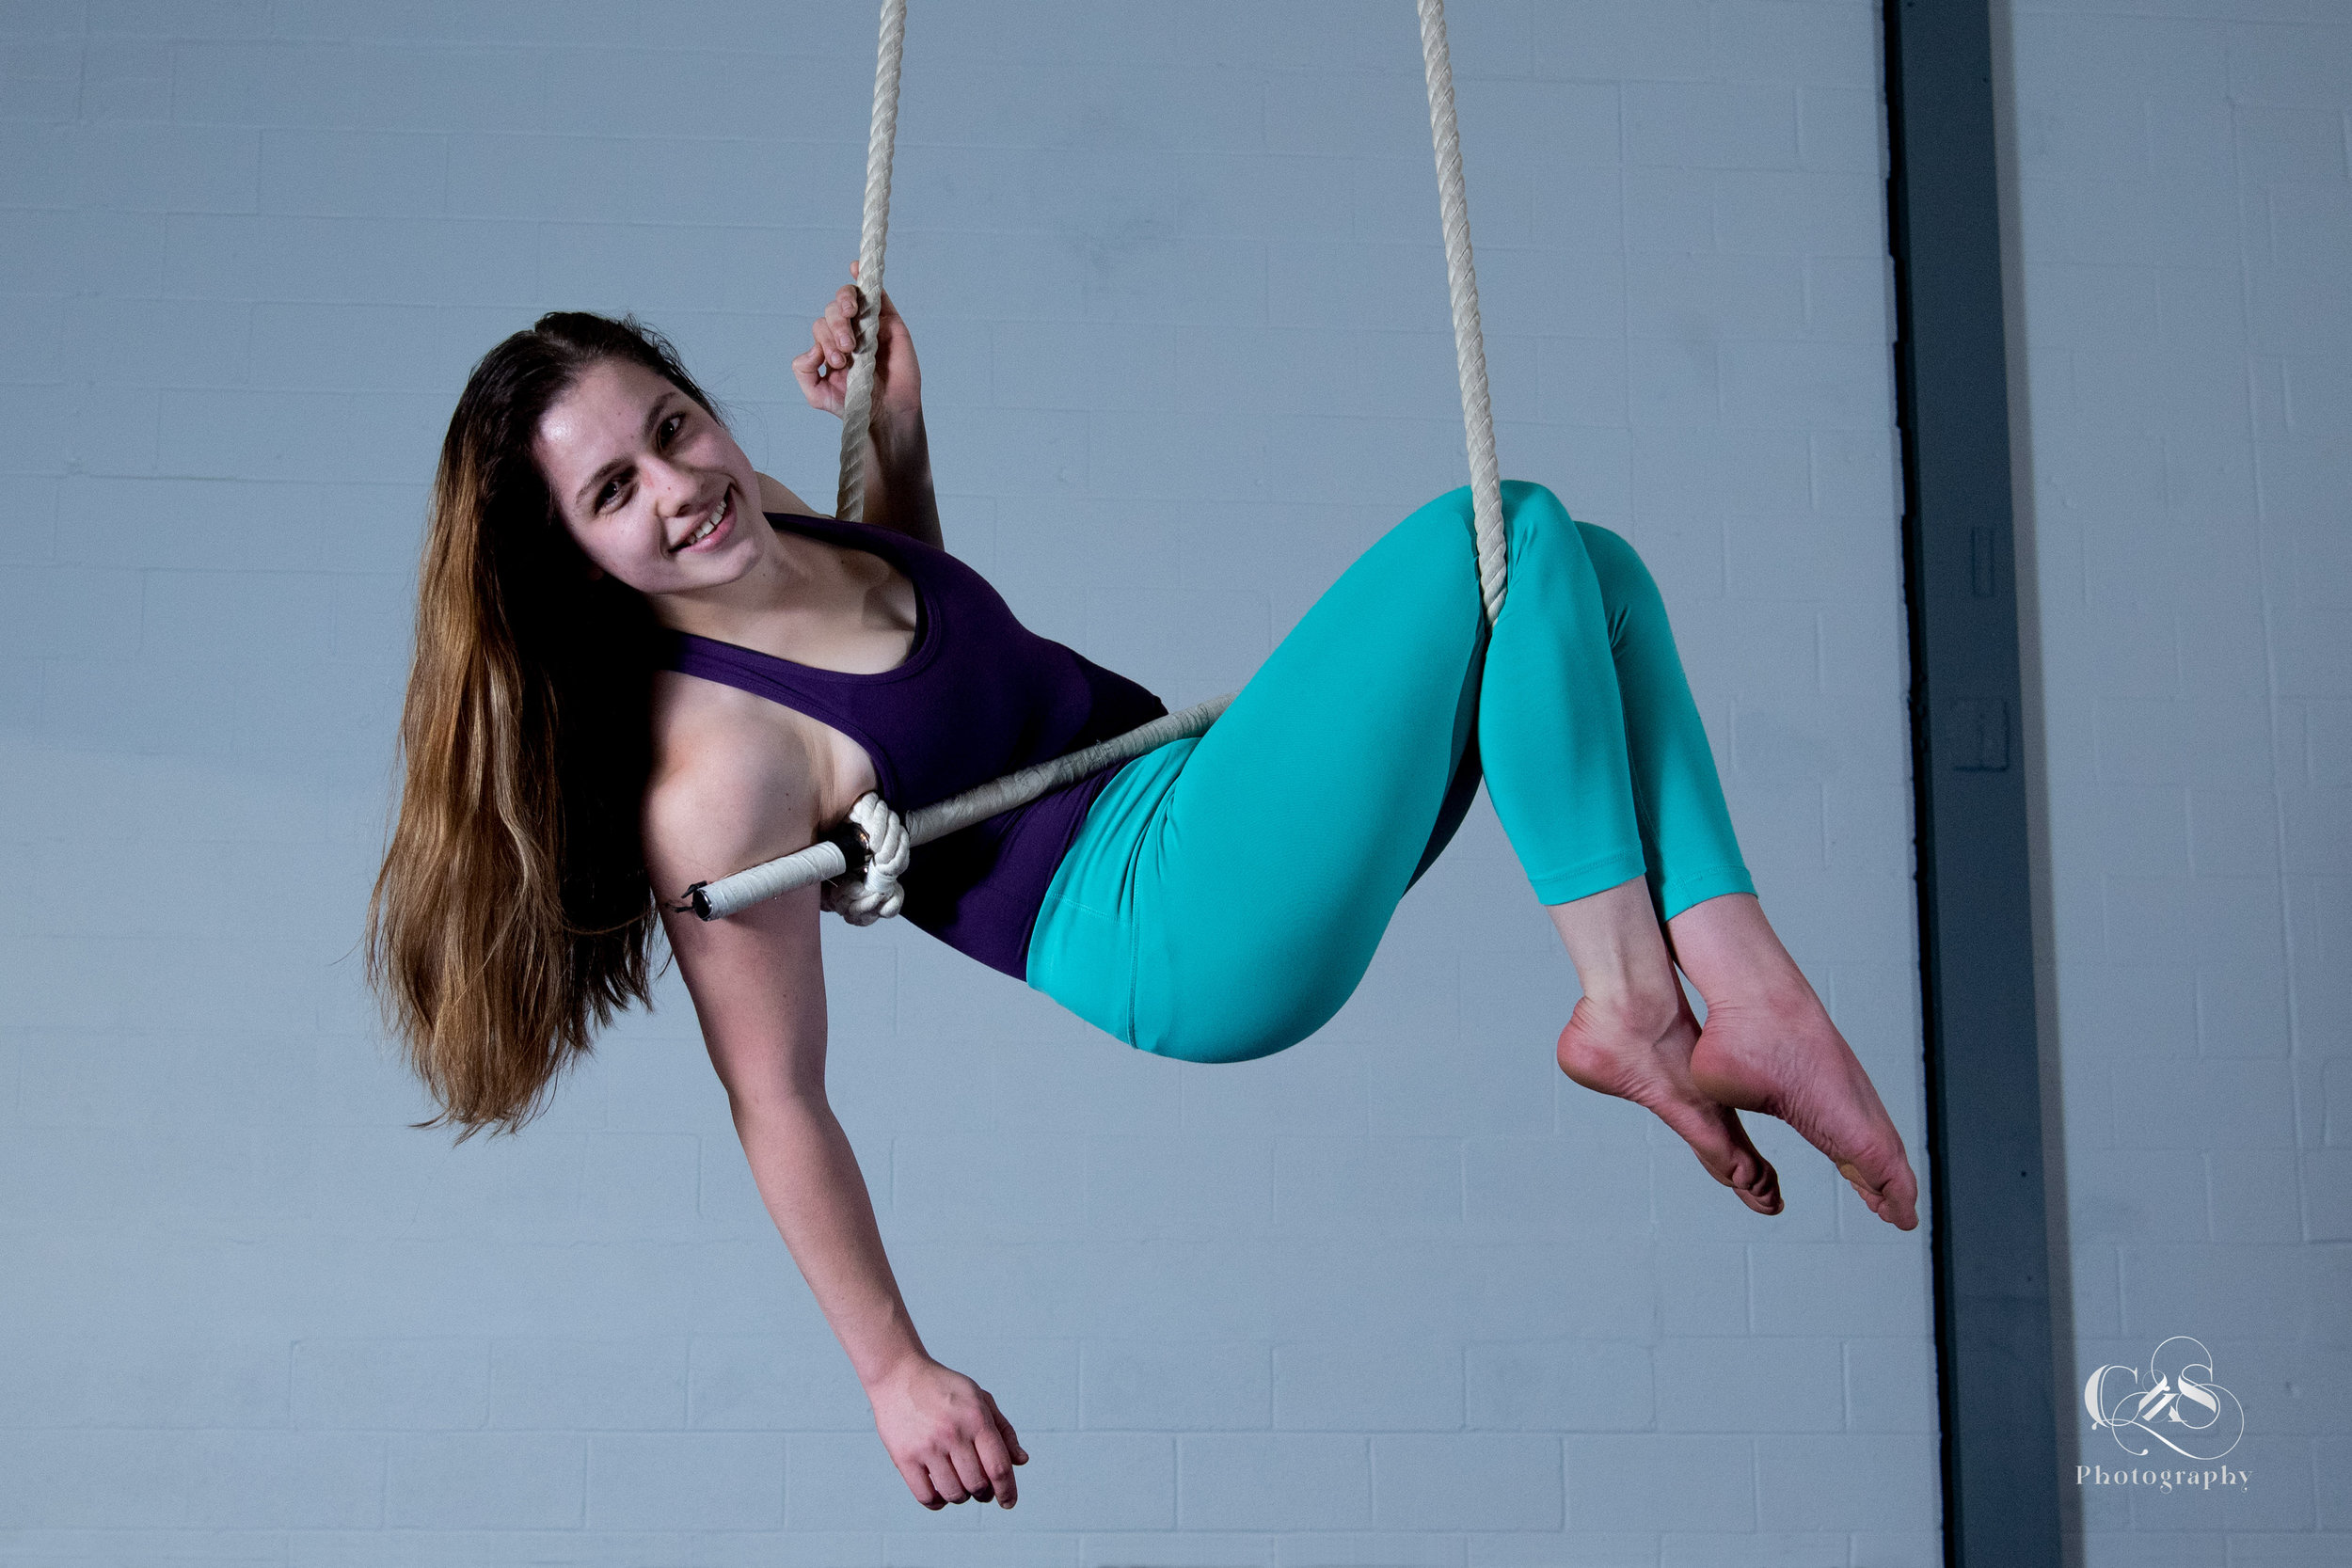 Kristen Bloom - DANCE TRAPEZE INSTRUCTORKristen is a trapeze teacher here at The Bird's Nest. She began her aerial training in 2014, and started teaching in 2018. Kristen trains and takes classes locally in Buffalo, but often travels to learn from other instructors in Toronto and NECCA. Kristen enjoys combining strength and creativity in her training. Her training currently focuses on trapeze and lyra, but she also enjoys practicing on the silks.